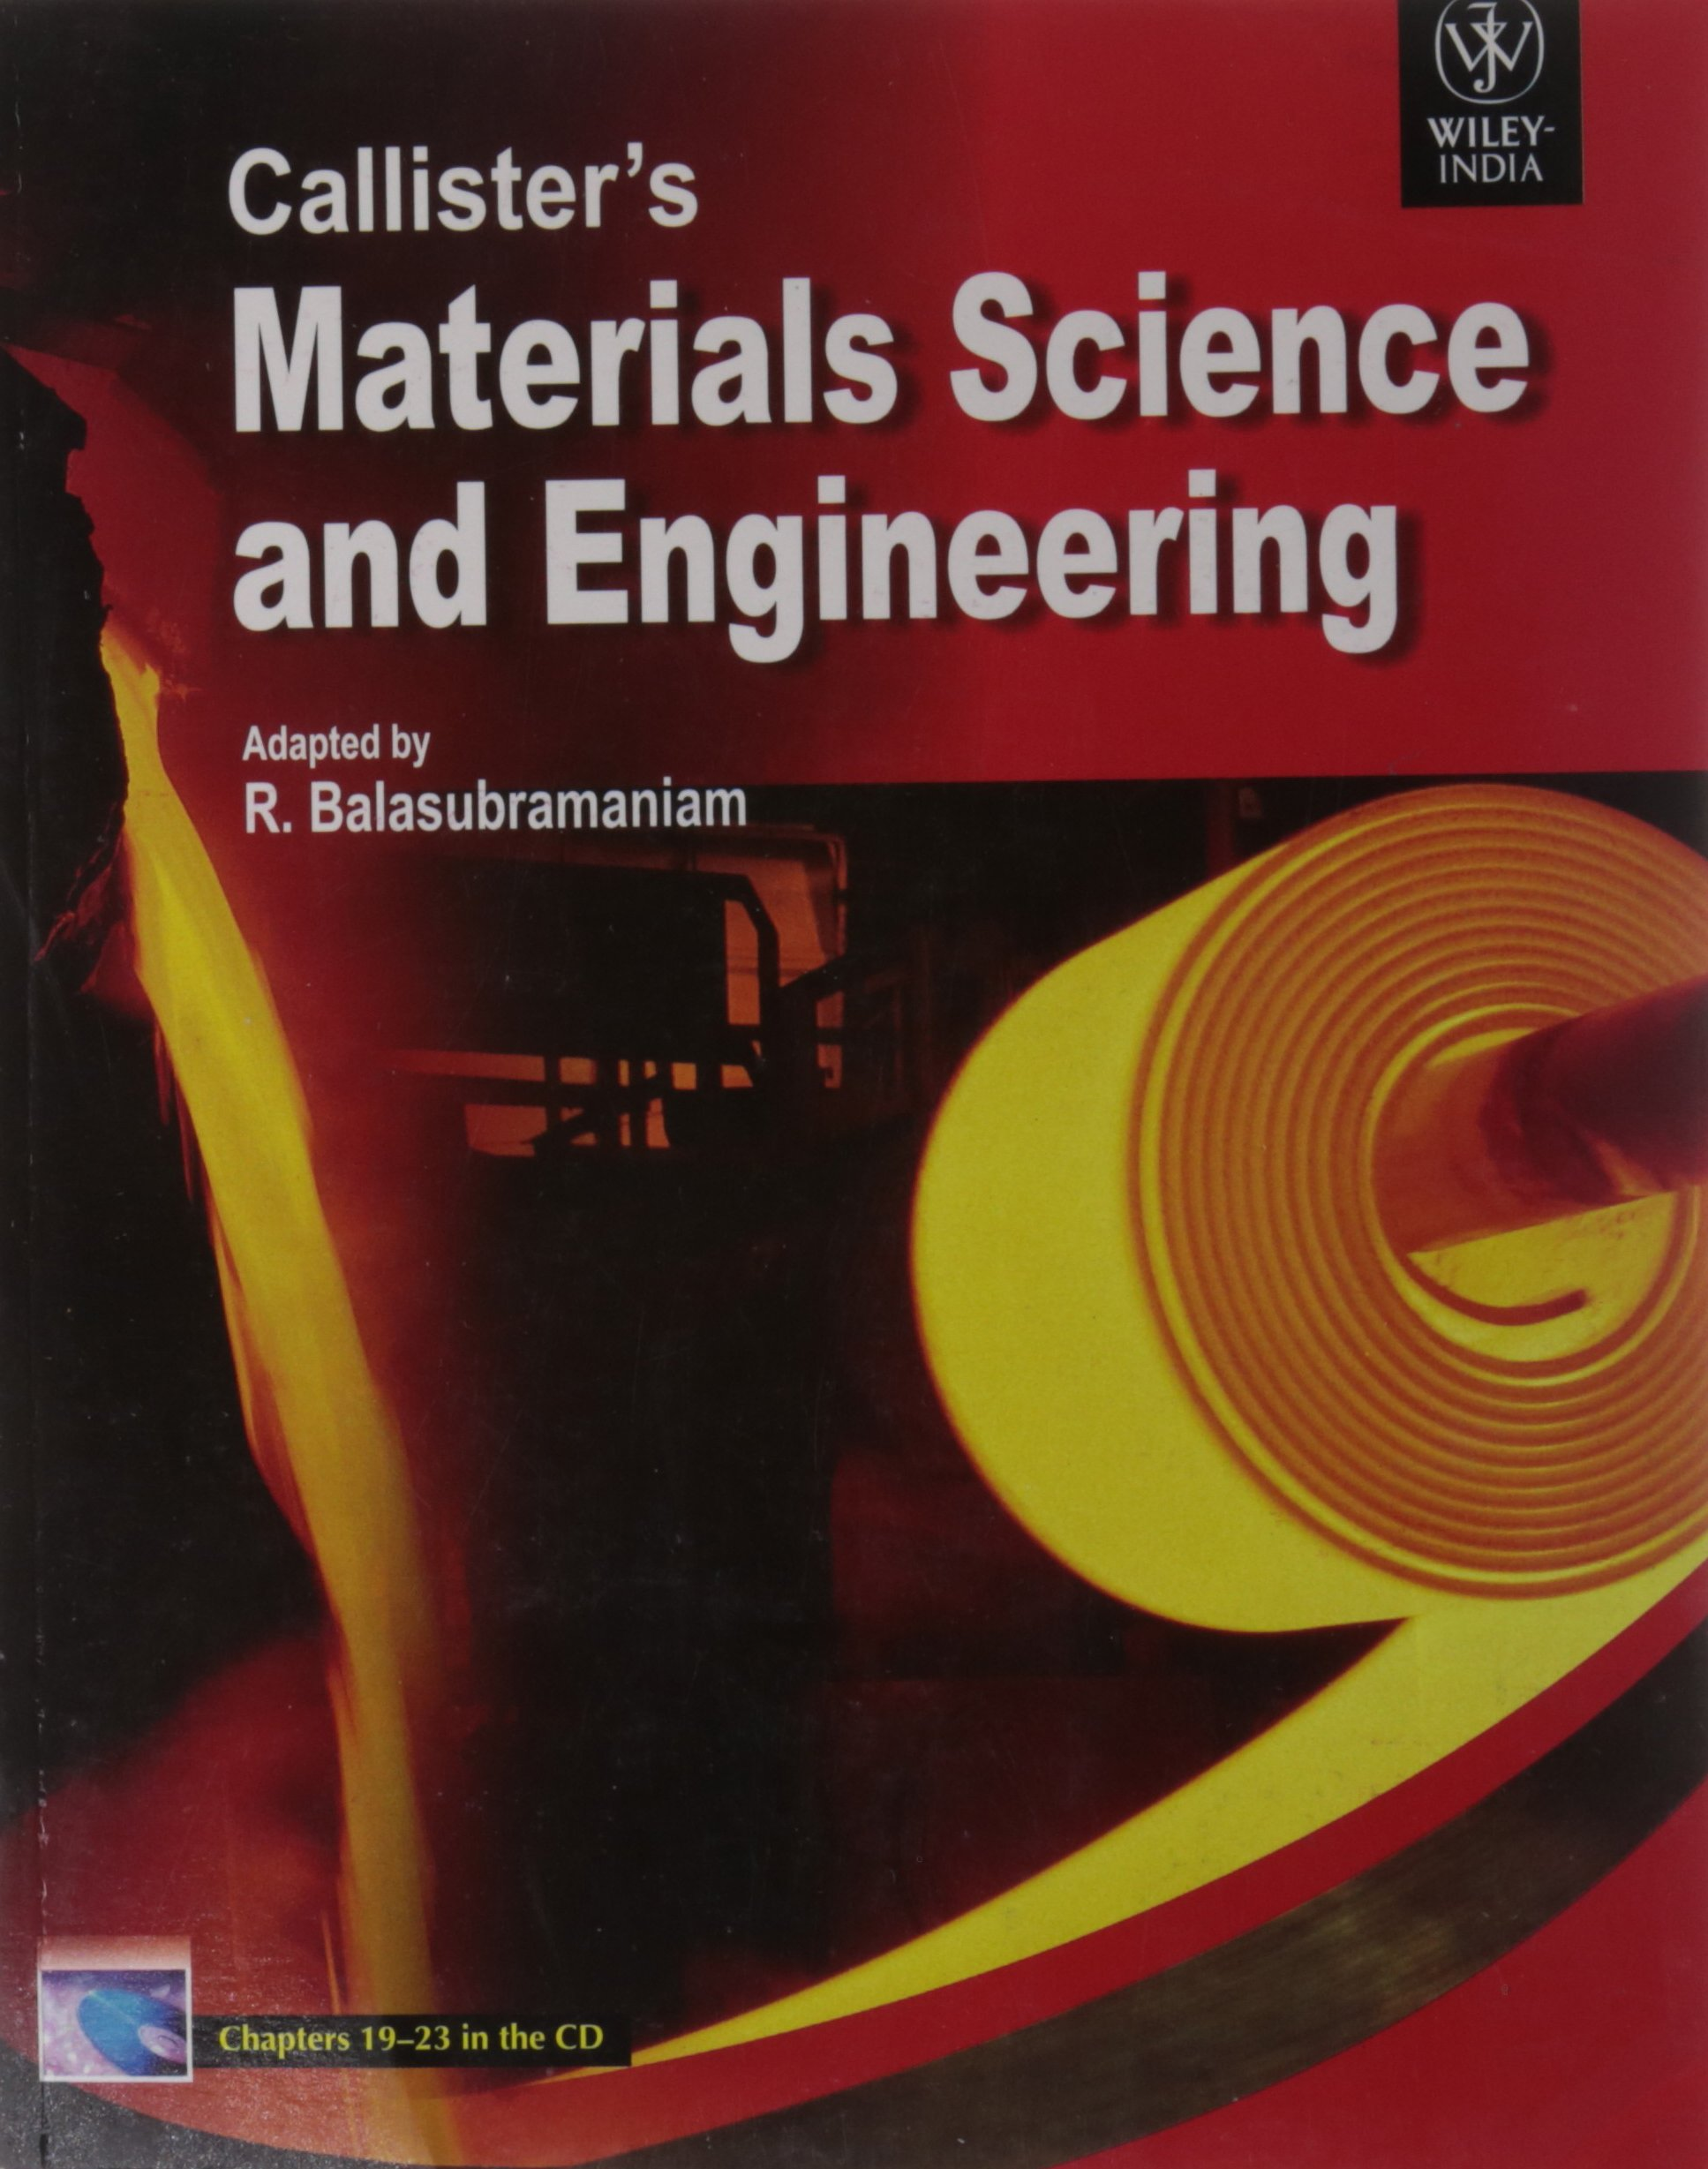 Material Science And Engineering By Callister 7th Edition Pdf